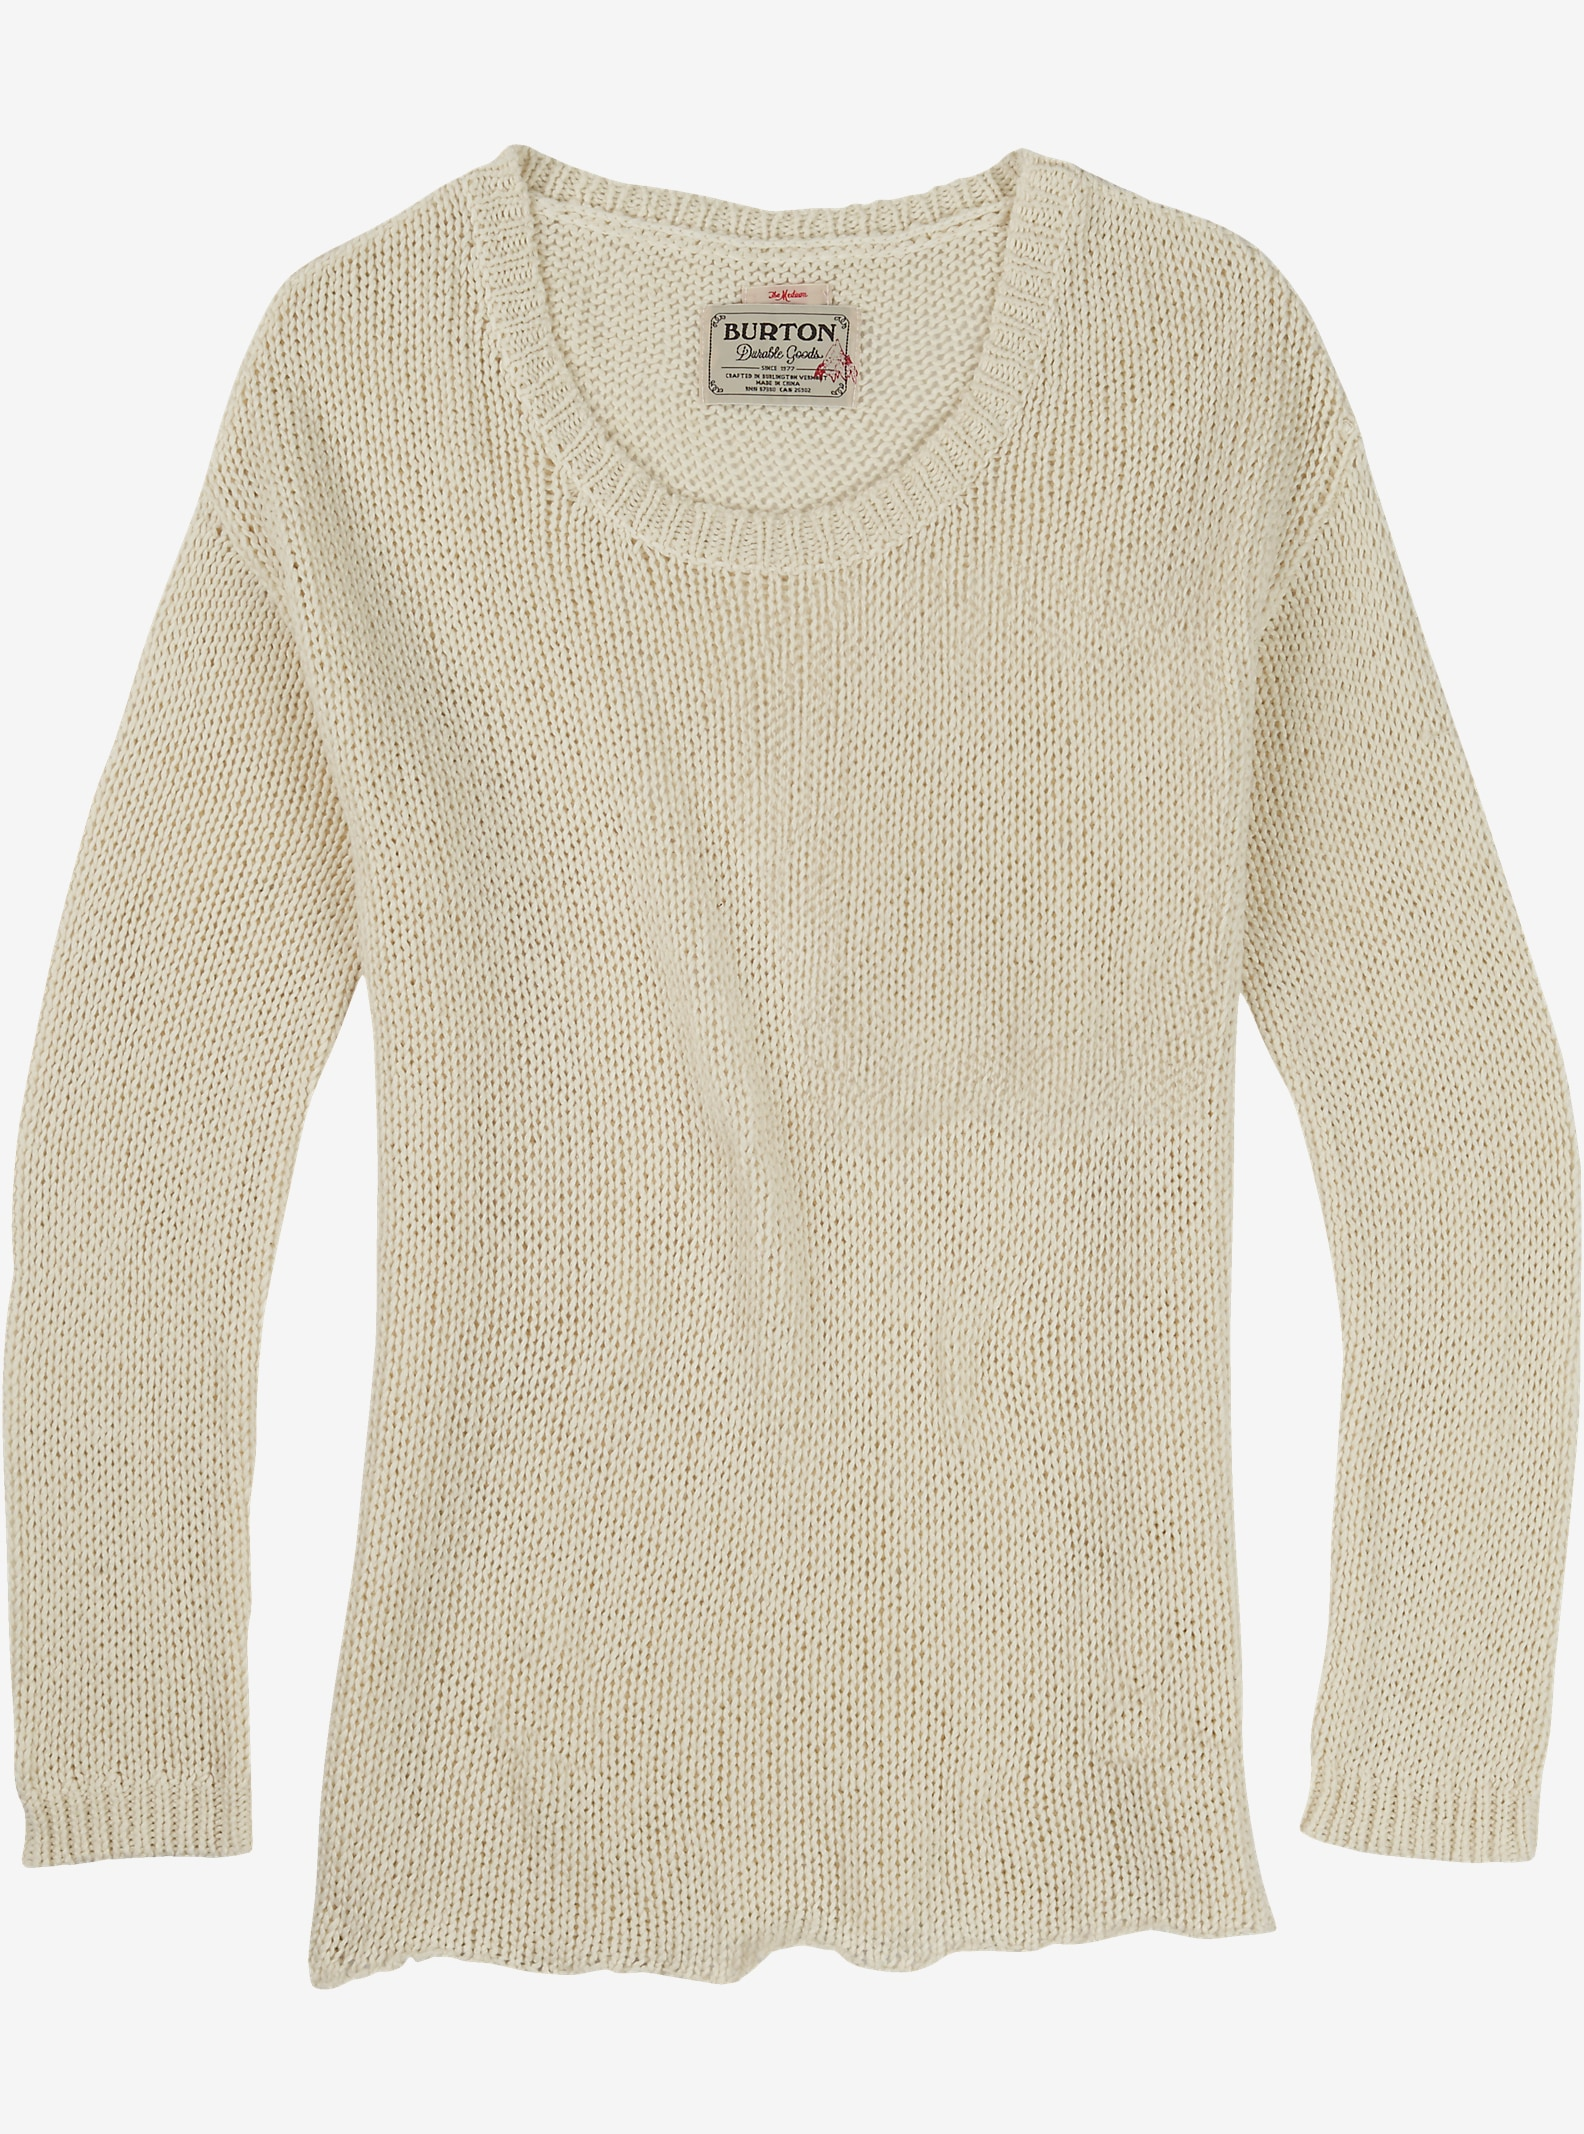 Burton Nicki Sweater shown in Canvas Heather